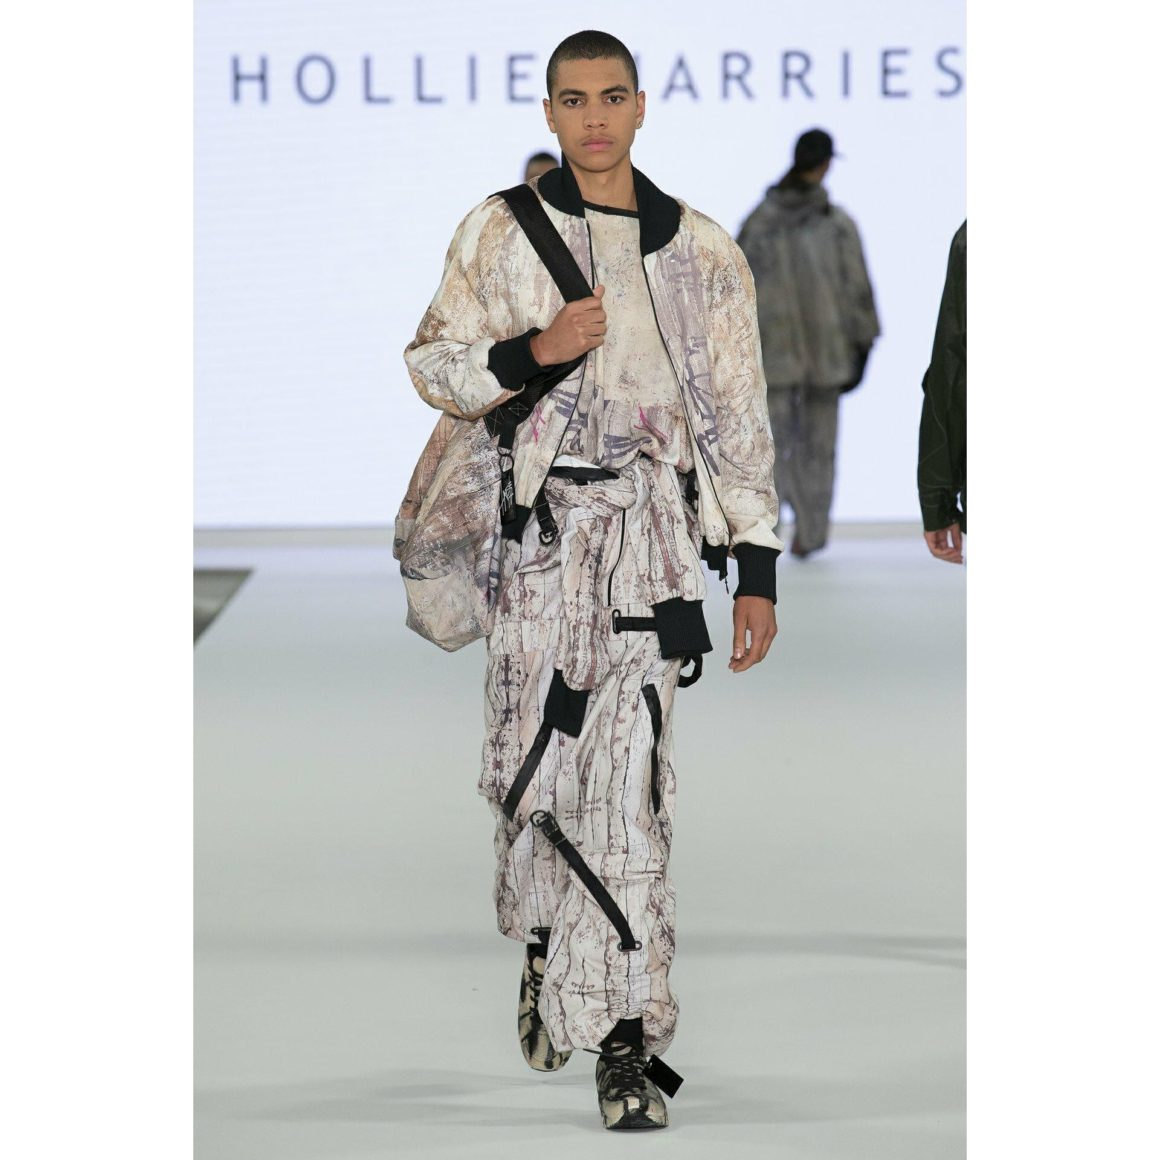 Graduate Fashion Week 2018 Holly Harries 3